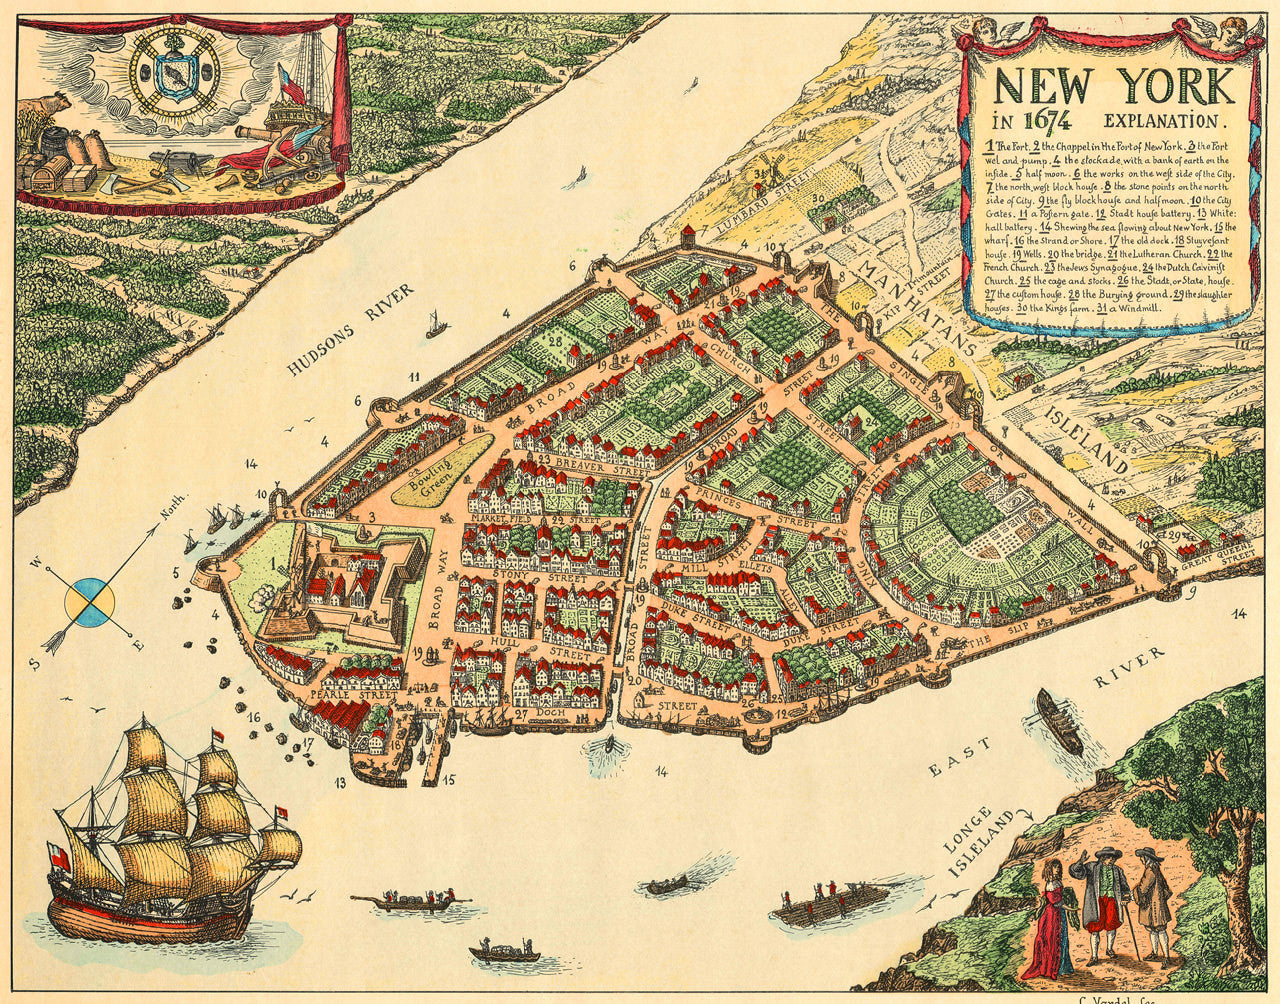 New York in 1674, Lower Manhattan, Vintage Map | Battlemaps.us Manhattan Ny Map on manhattan tourist map, manhattan south map, manhattan hotel map, manhattan on us map, manhattan nebraska map, manhattan new york subway, nyc map, new city street map, manhattan rooftop bars in december, midtown manhattan map, manhattan nd map, manhattan yonkers map, manhattan island, manhattan tx map, world trade center on a map, lower manhattan map, manhattan street map, 1920s manhattan map, manhattan los angeles map, manhattan avenues and streets,